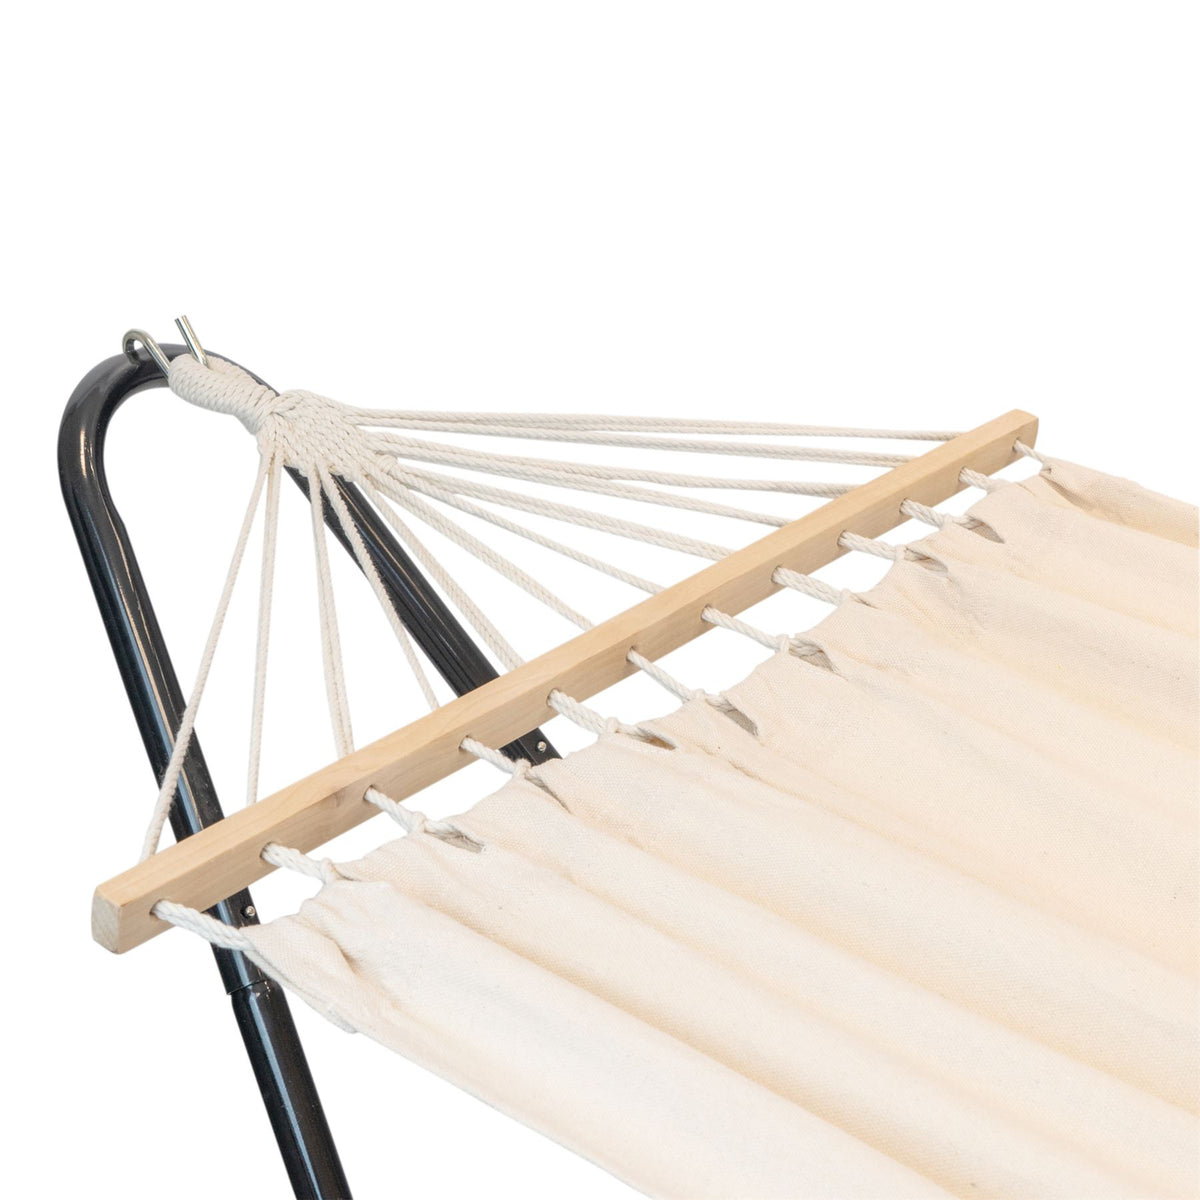 Harbour Housewares garden hammocks